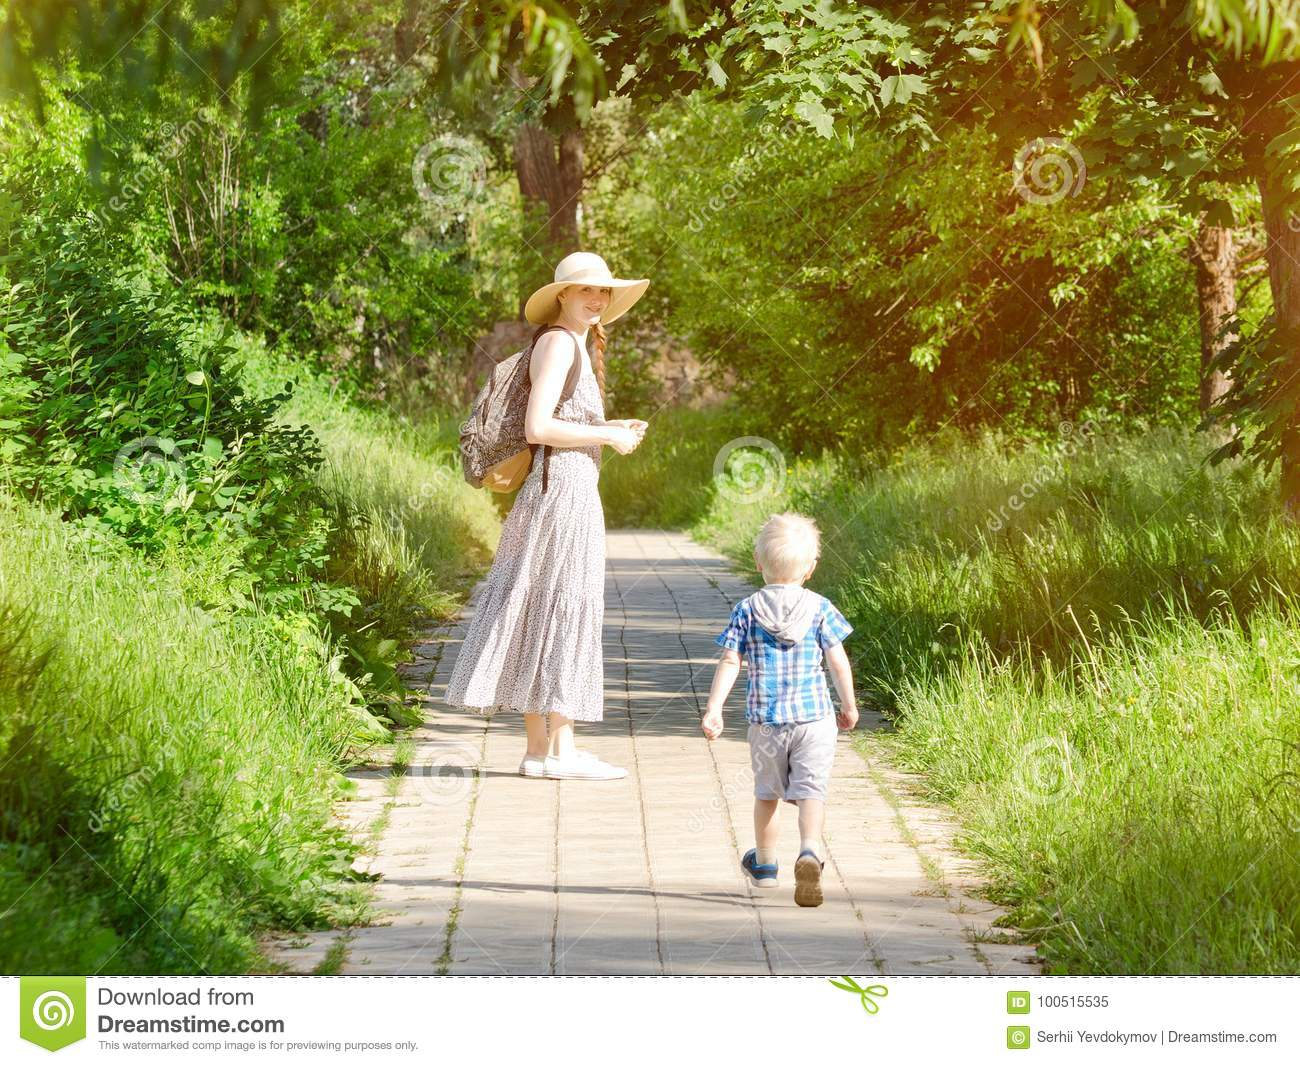 Mom and son walking along the road in the park. Back view. Vertical frame